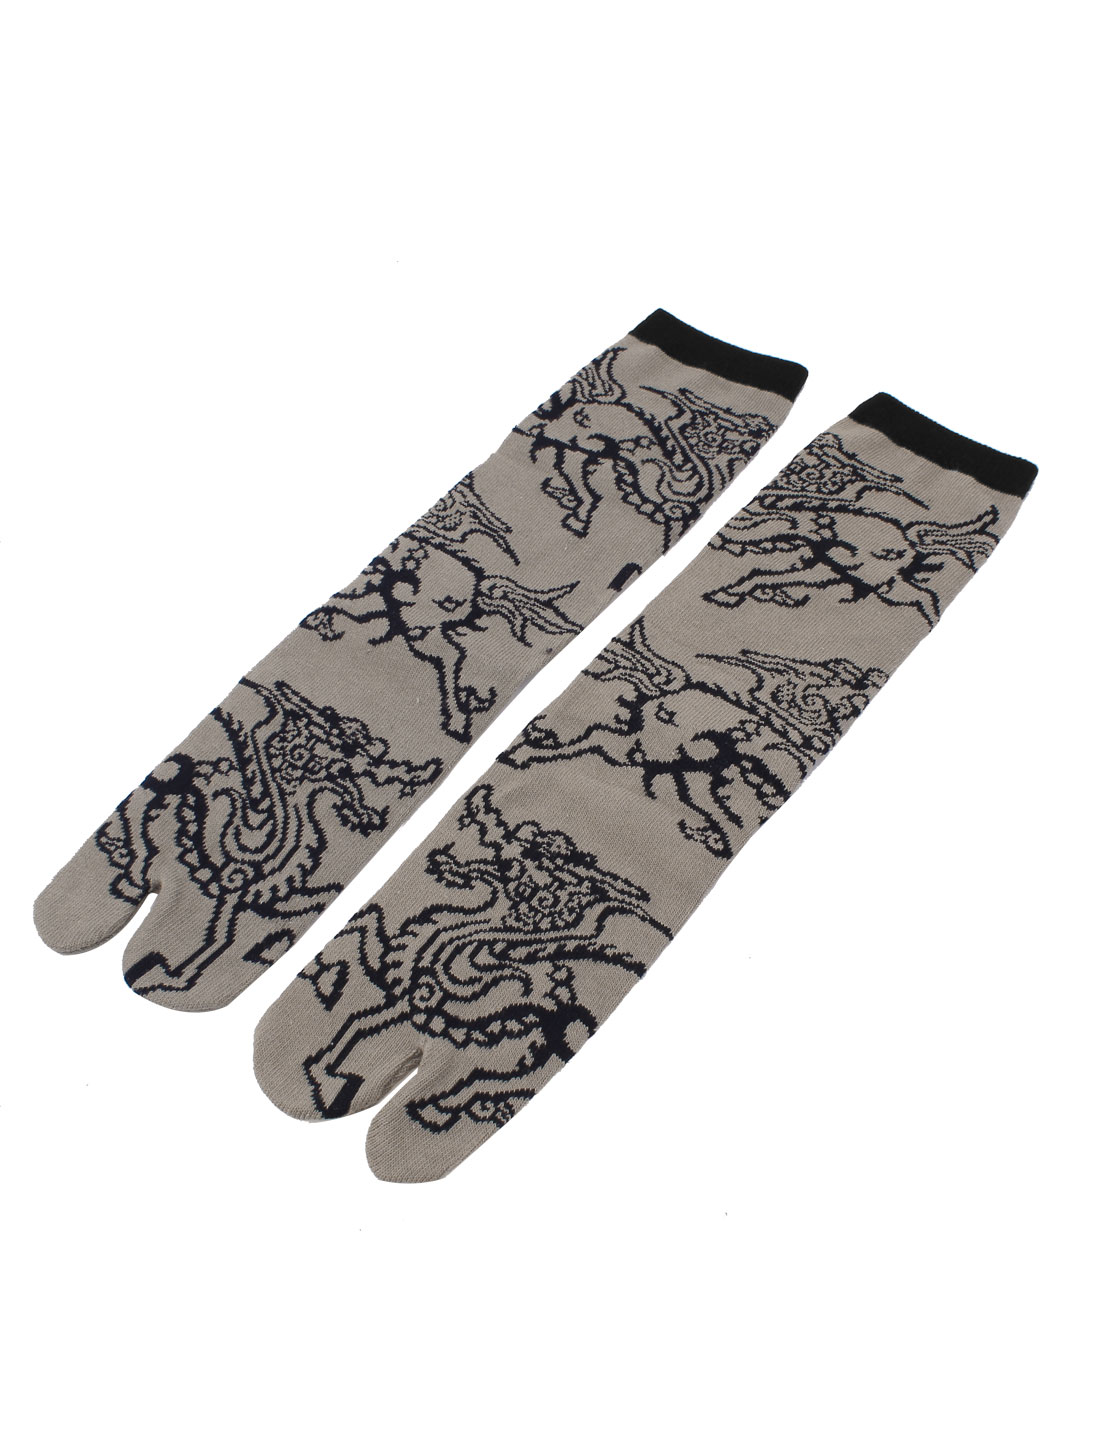 Pair Black Dragon Printed Khaki Cotton Blends Elastic Cuff Ankle High Hosiery Feet Toe Socks for Men